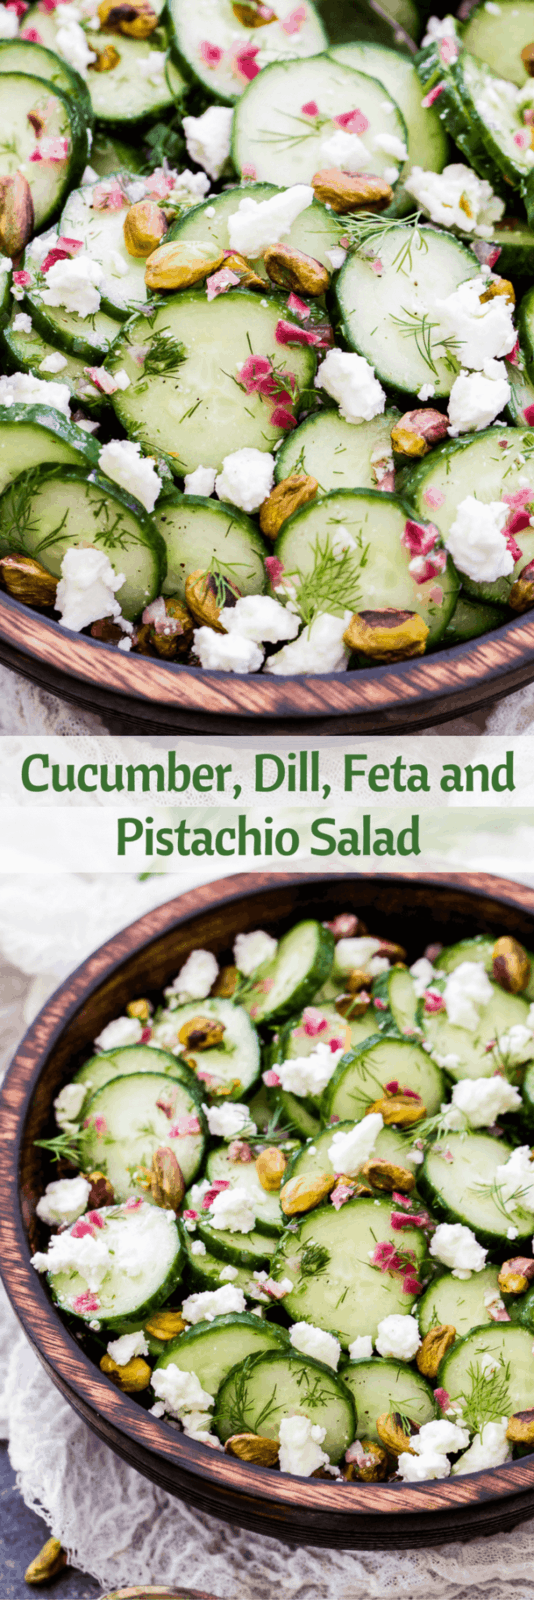 Say hello to your new favorite, refreshing salad - Cucumber, Dill, Feta and Pistachio Salad. Crisp cucumbers, fresh dill, salty feta and crunchy pistachios are the perfect combination of flavors! www.reciperunner.com